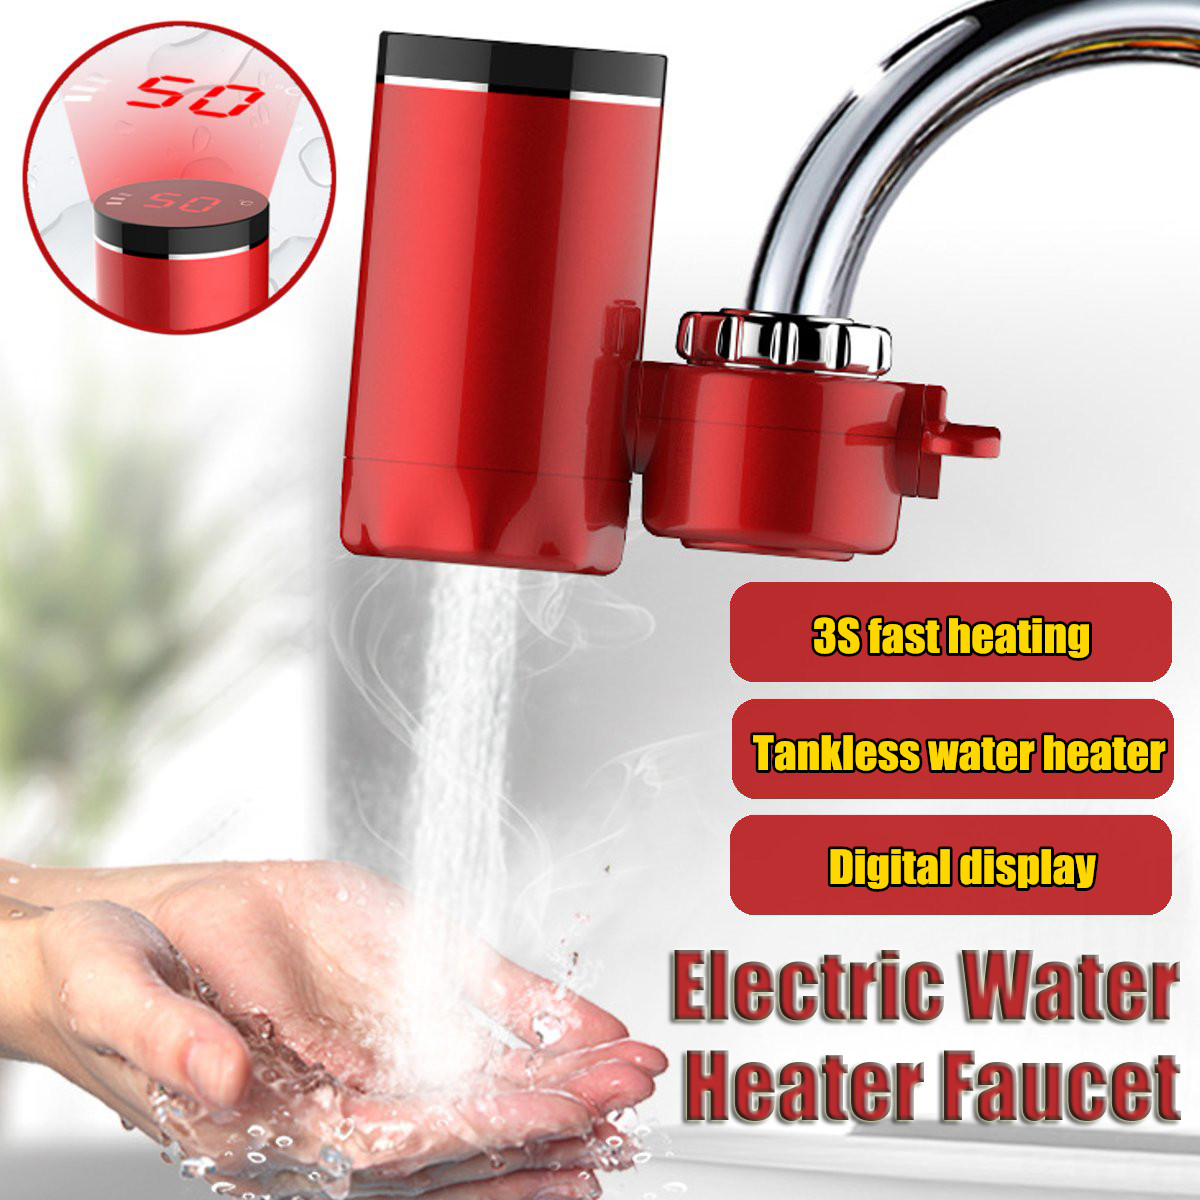 Electric Hot Faucet Water Heater Electric Tankless Water Heating Kitchen Faucet Digital Display Instant Water Tap 3000WElectric Hot Faucet Water Heater Electric Tankless Water Heating Kitchen Faucet Digital Display Instant Water Tap 3000W